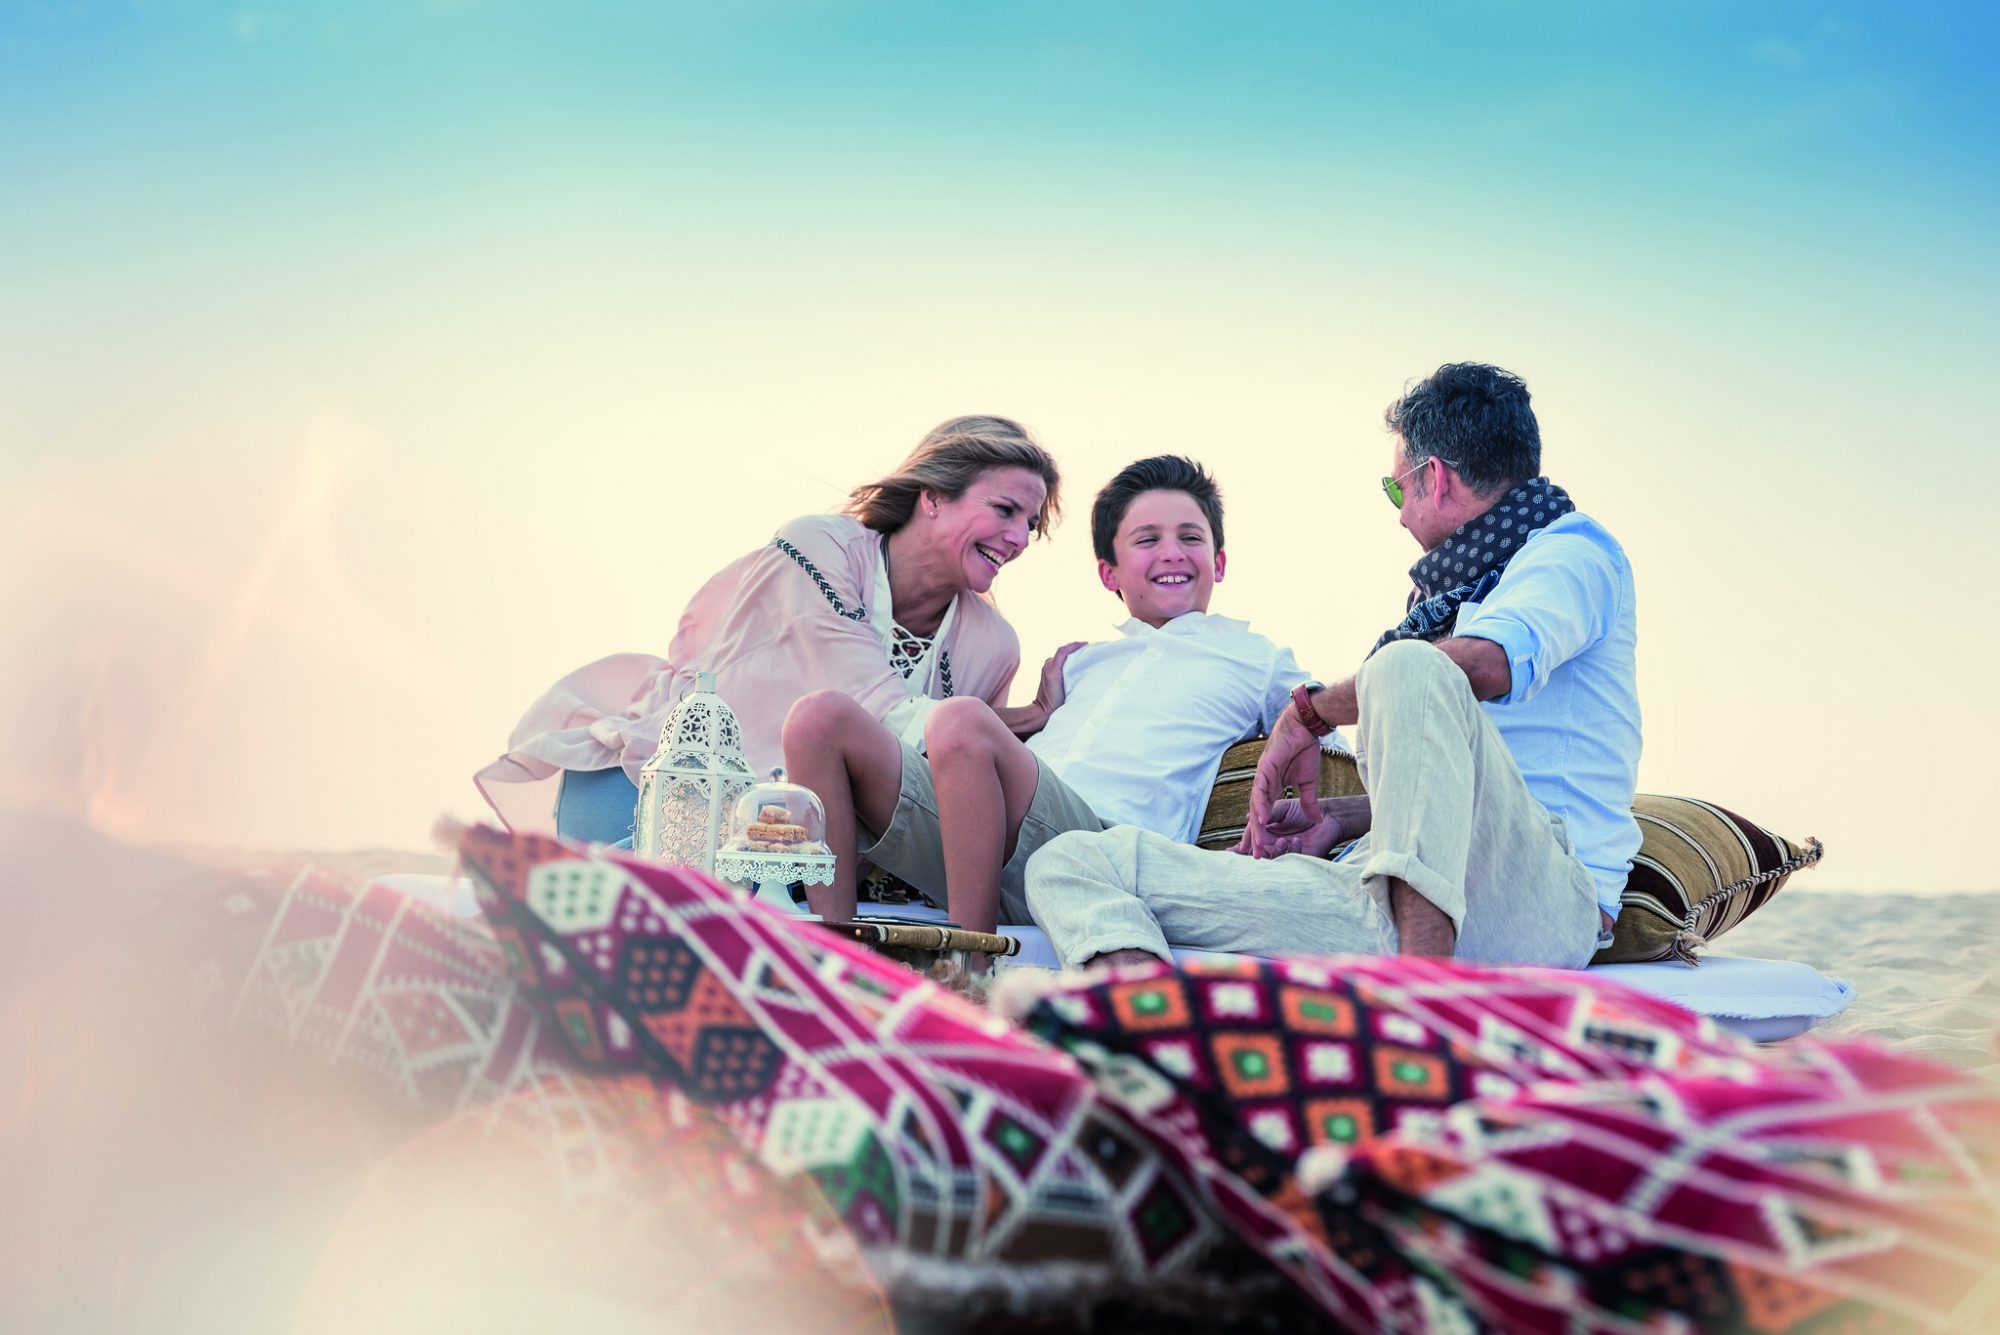 Discover Qatar and QA Holidays launch 'Family and Friends' packages